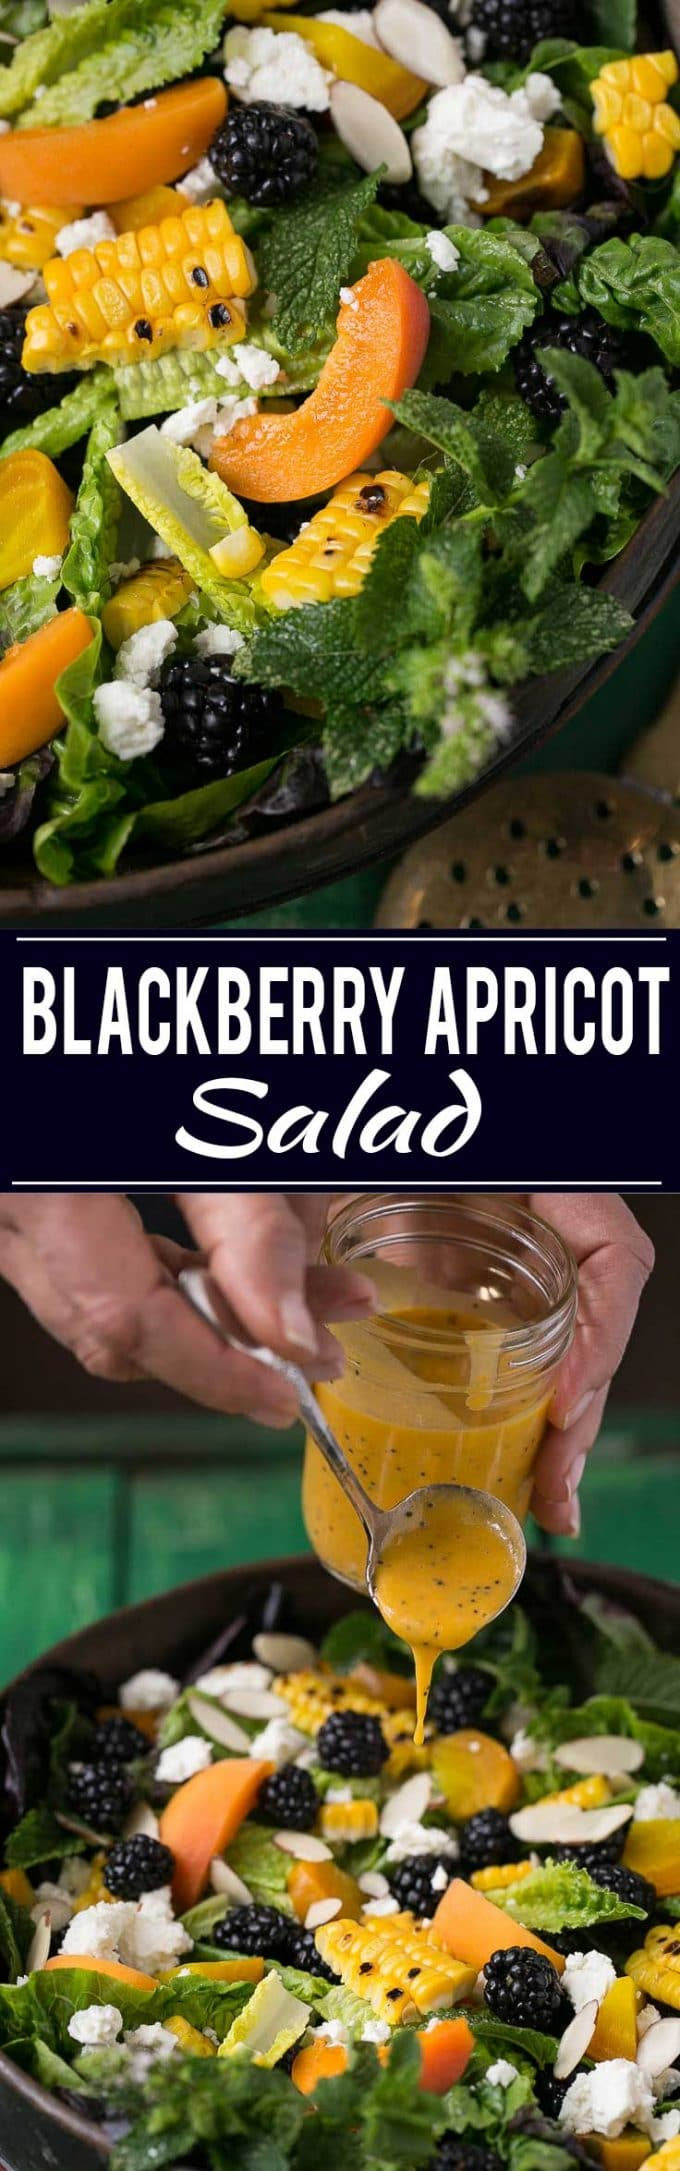 Blackberry Apricot Salad Recipe | Blackberry Apricot Salad | Summer Salad | Poppyseed Dressing Recipe | Best Poppyseed Dressing